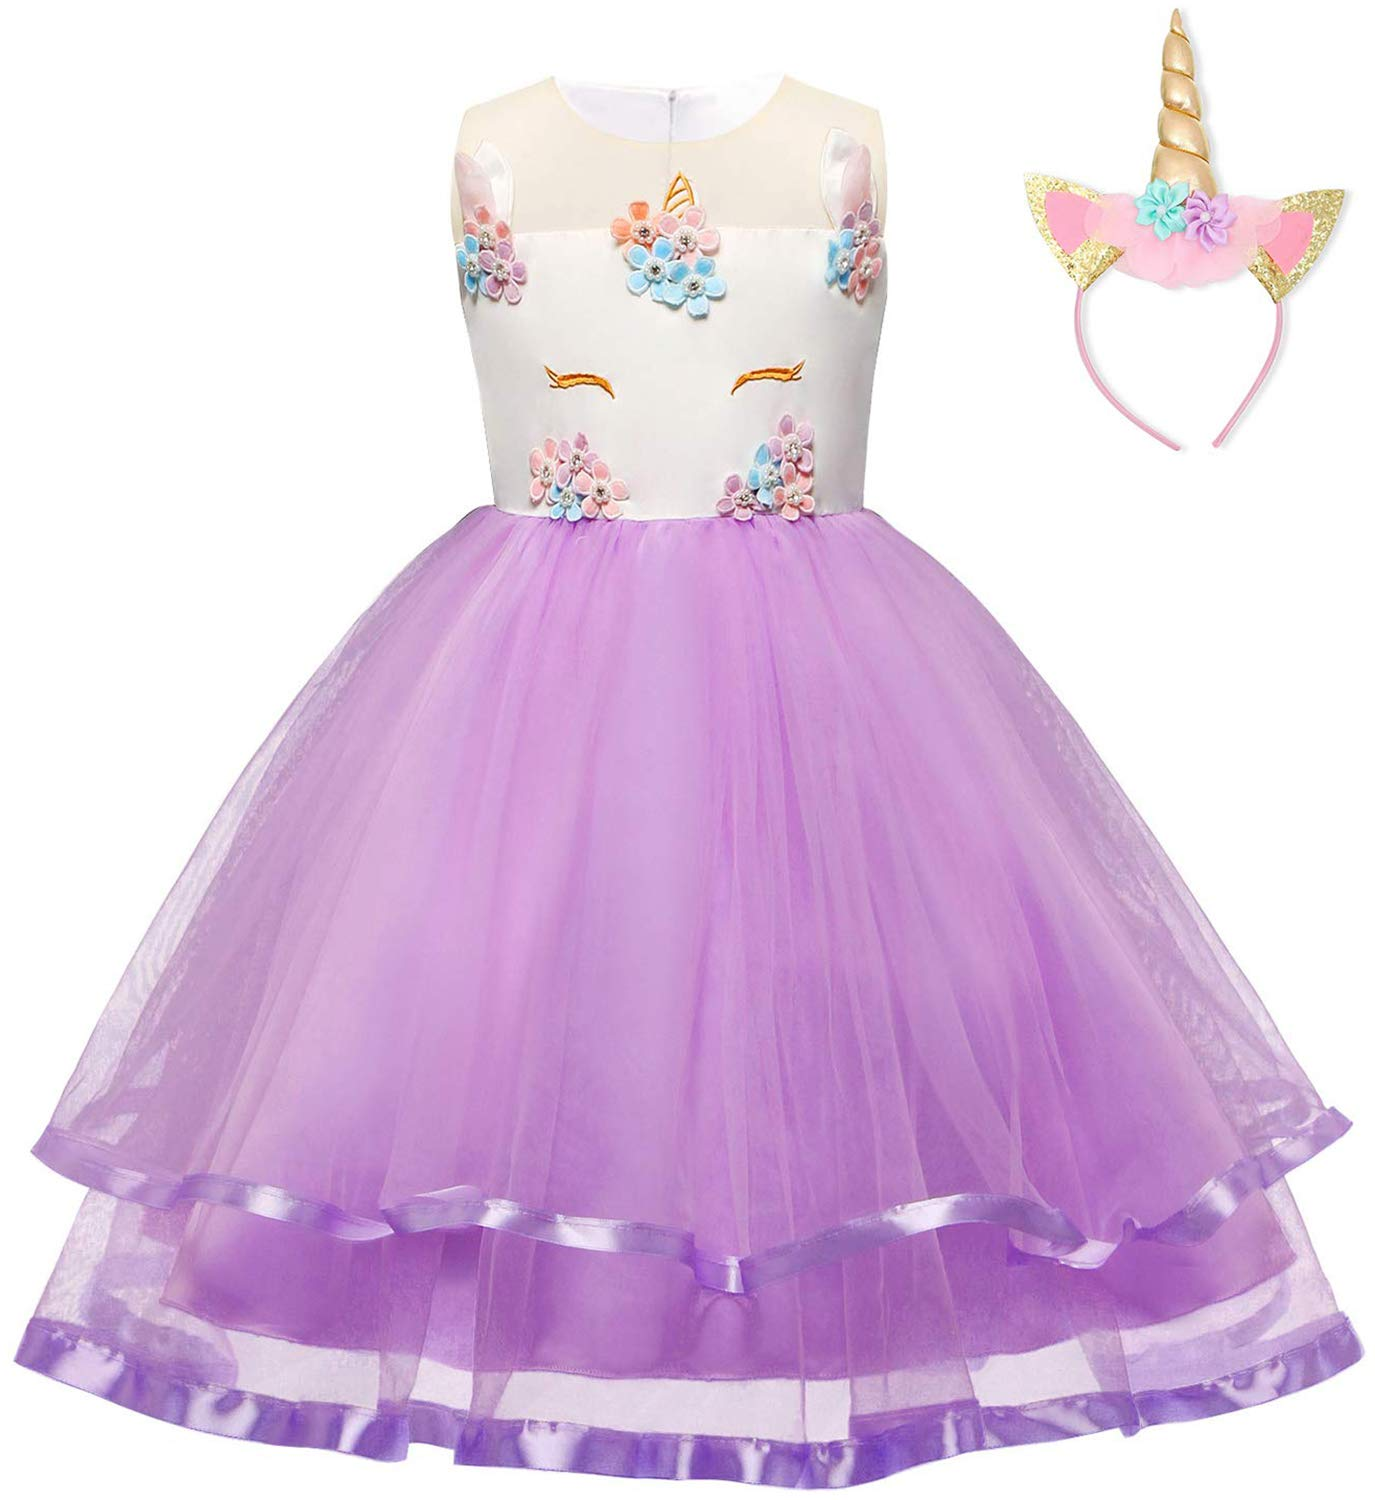 Baby Girl Party Princess Dress Ruffles Lace Wedding Formal Gowns TZ02